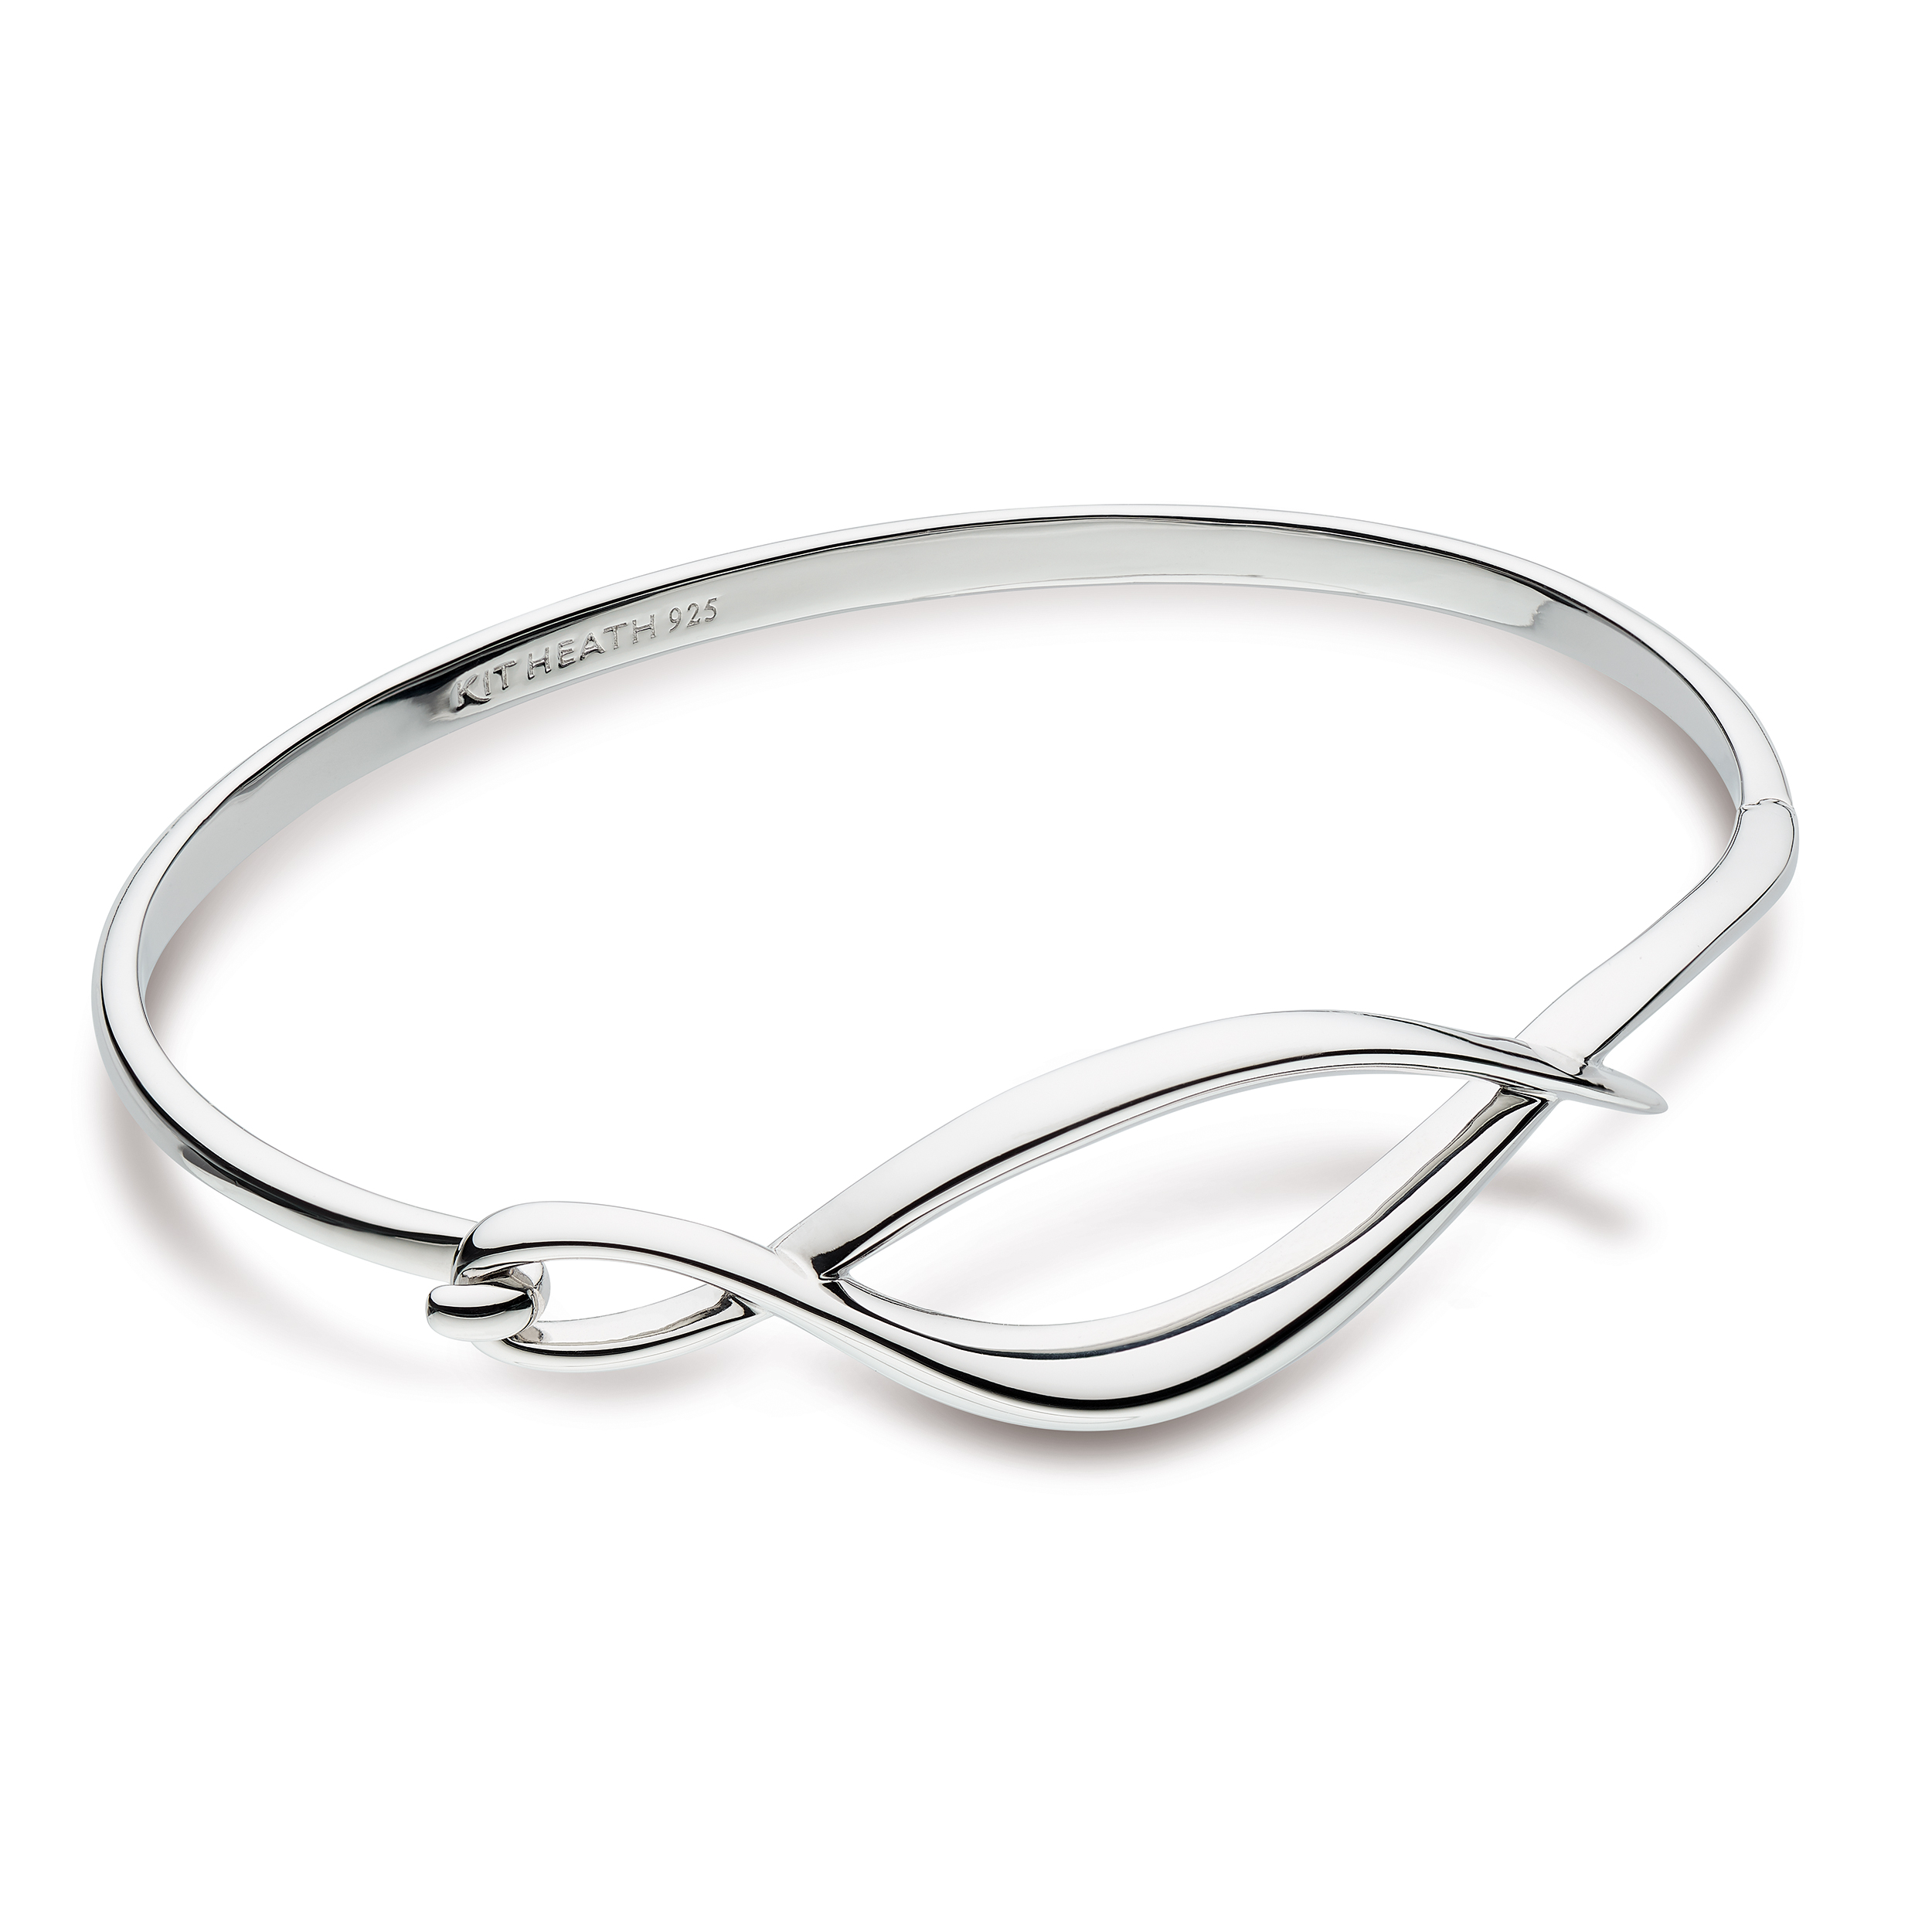 Sterling silver bangle with entwined design